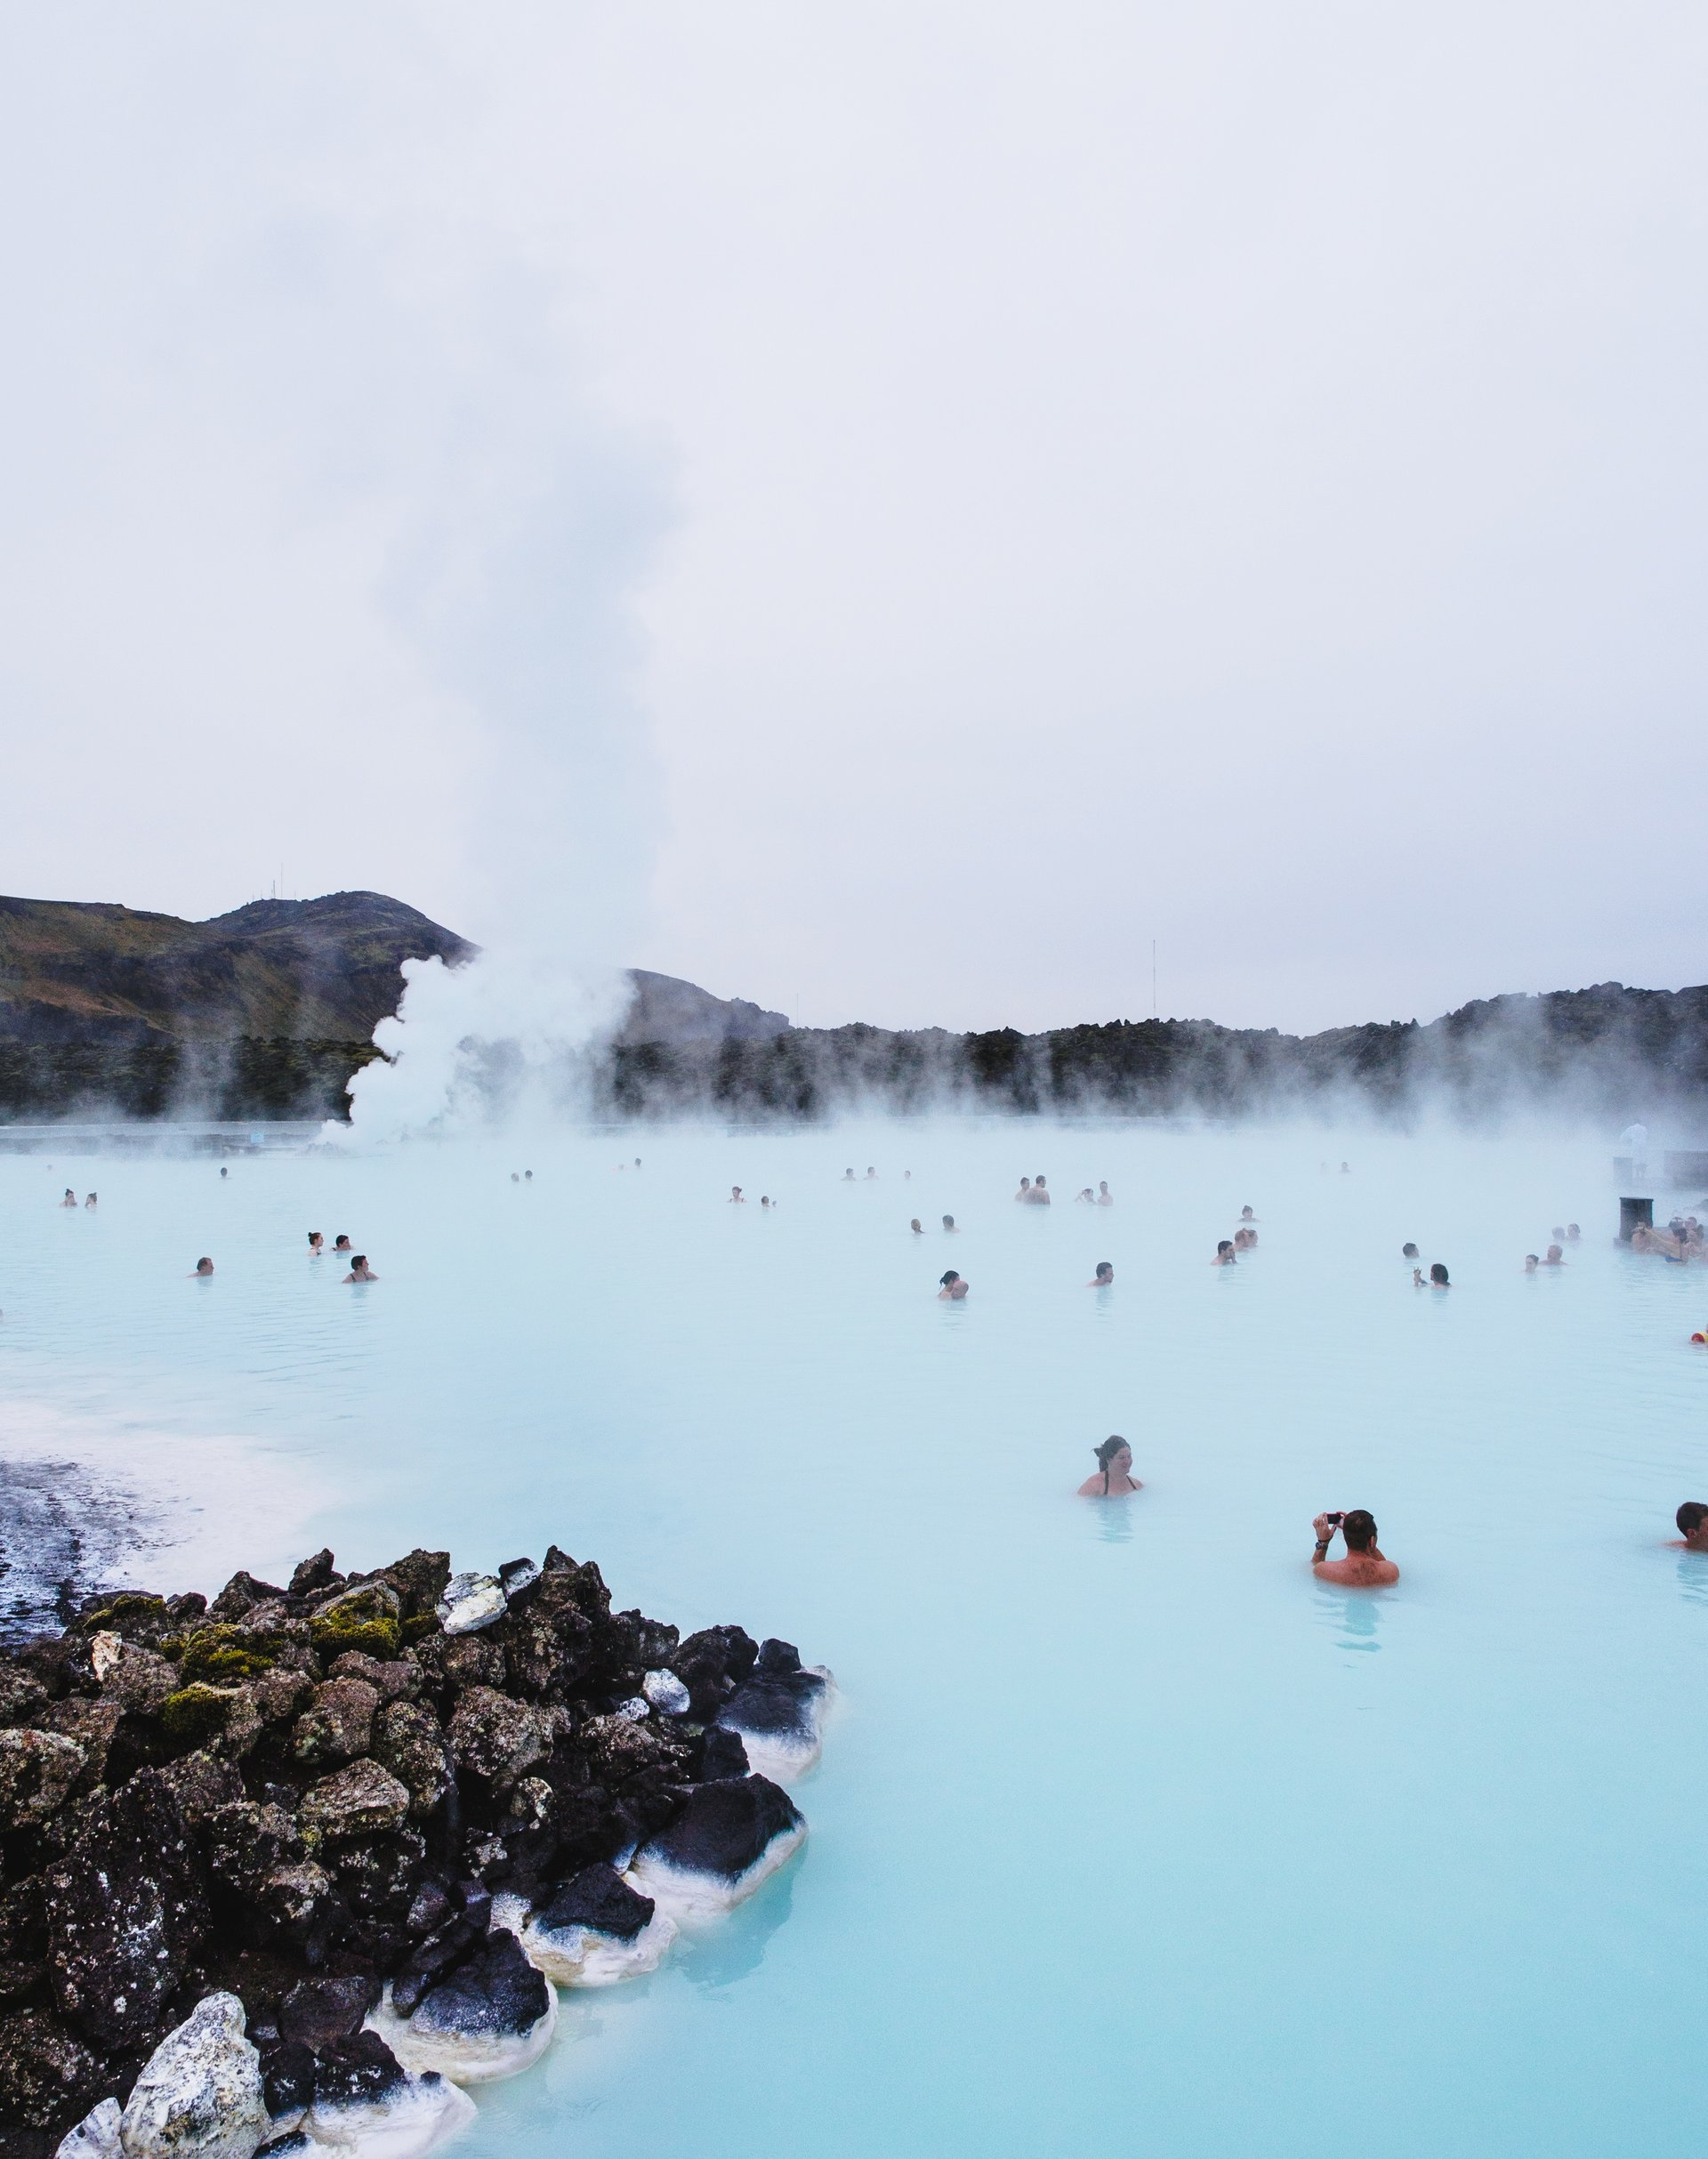 Blue Lagoon Geothermal Spa in Iceland 2020 - Best Time